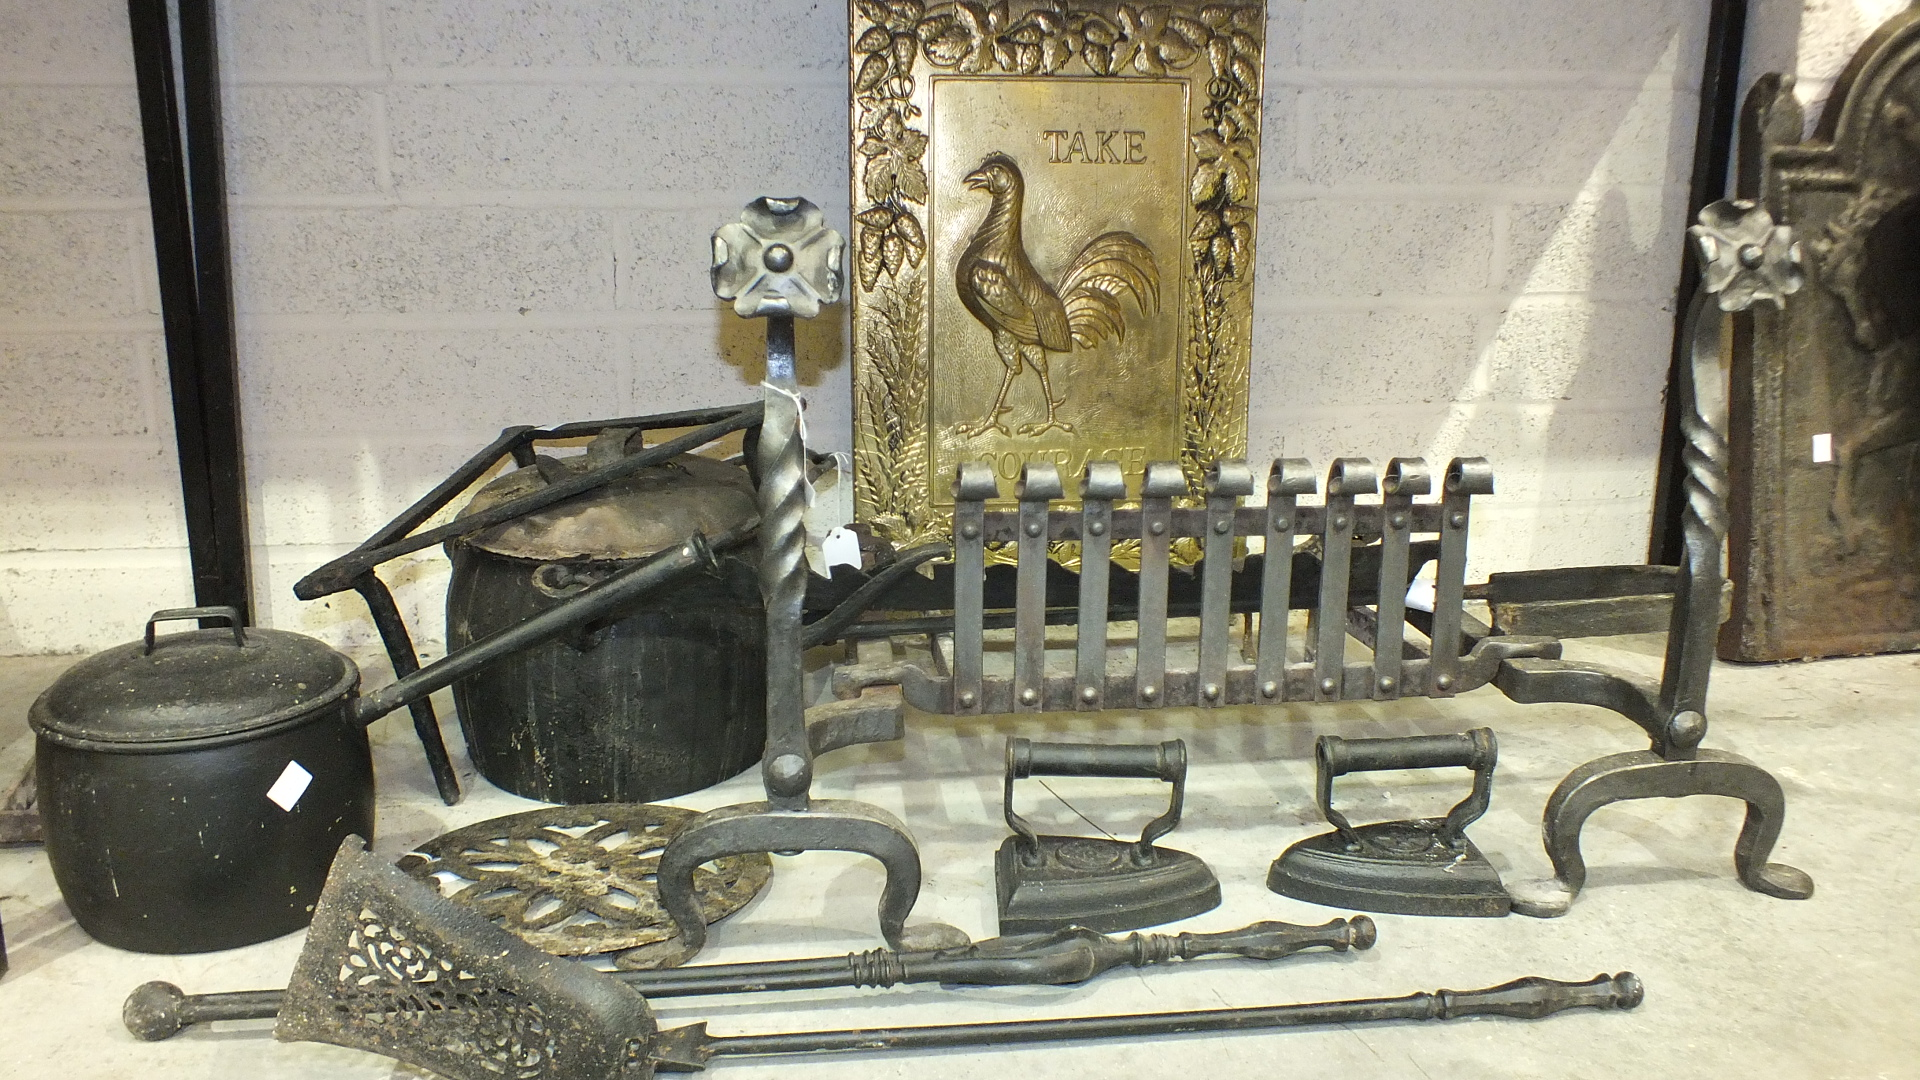 A wrought iron fire grate, dogs and fire back, together with iron cooking pots, pot hanger and